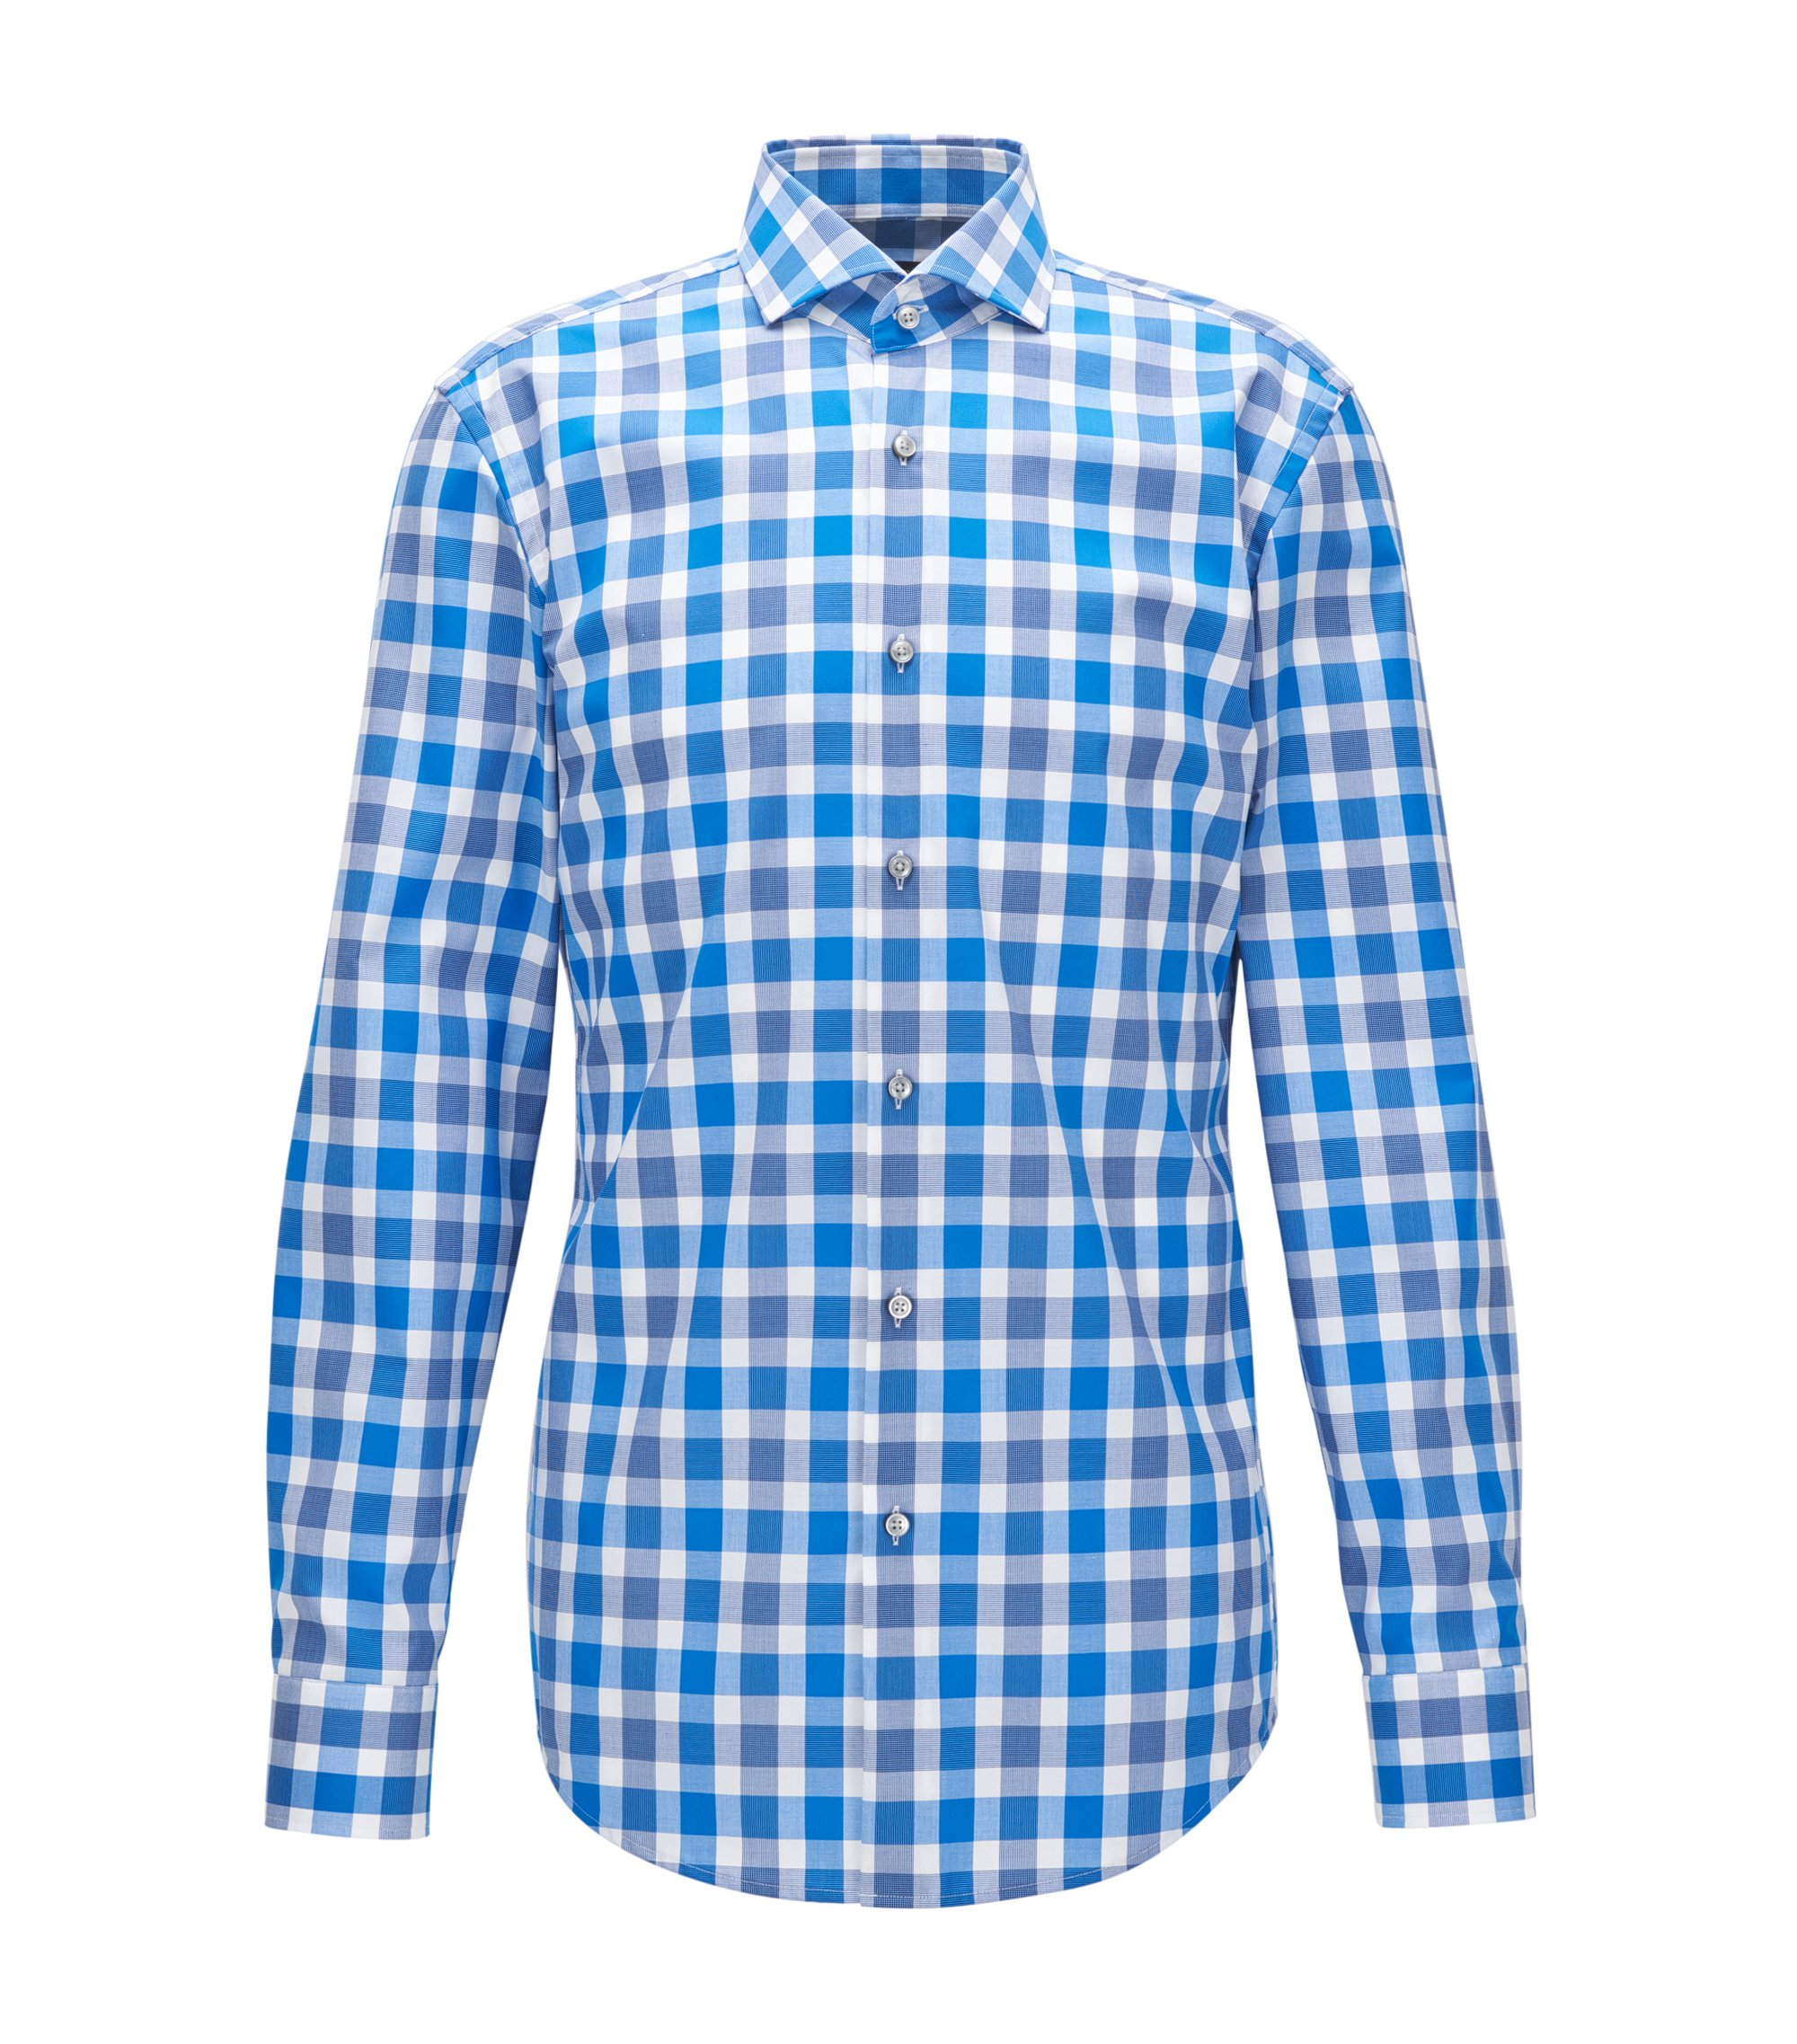 Checked Cotton Dress Shirt, Slim Fit | Jason, Blue